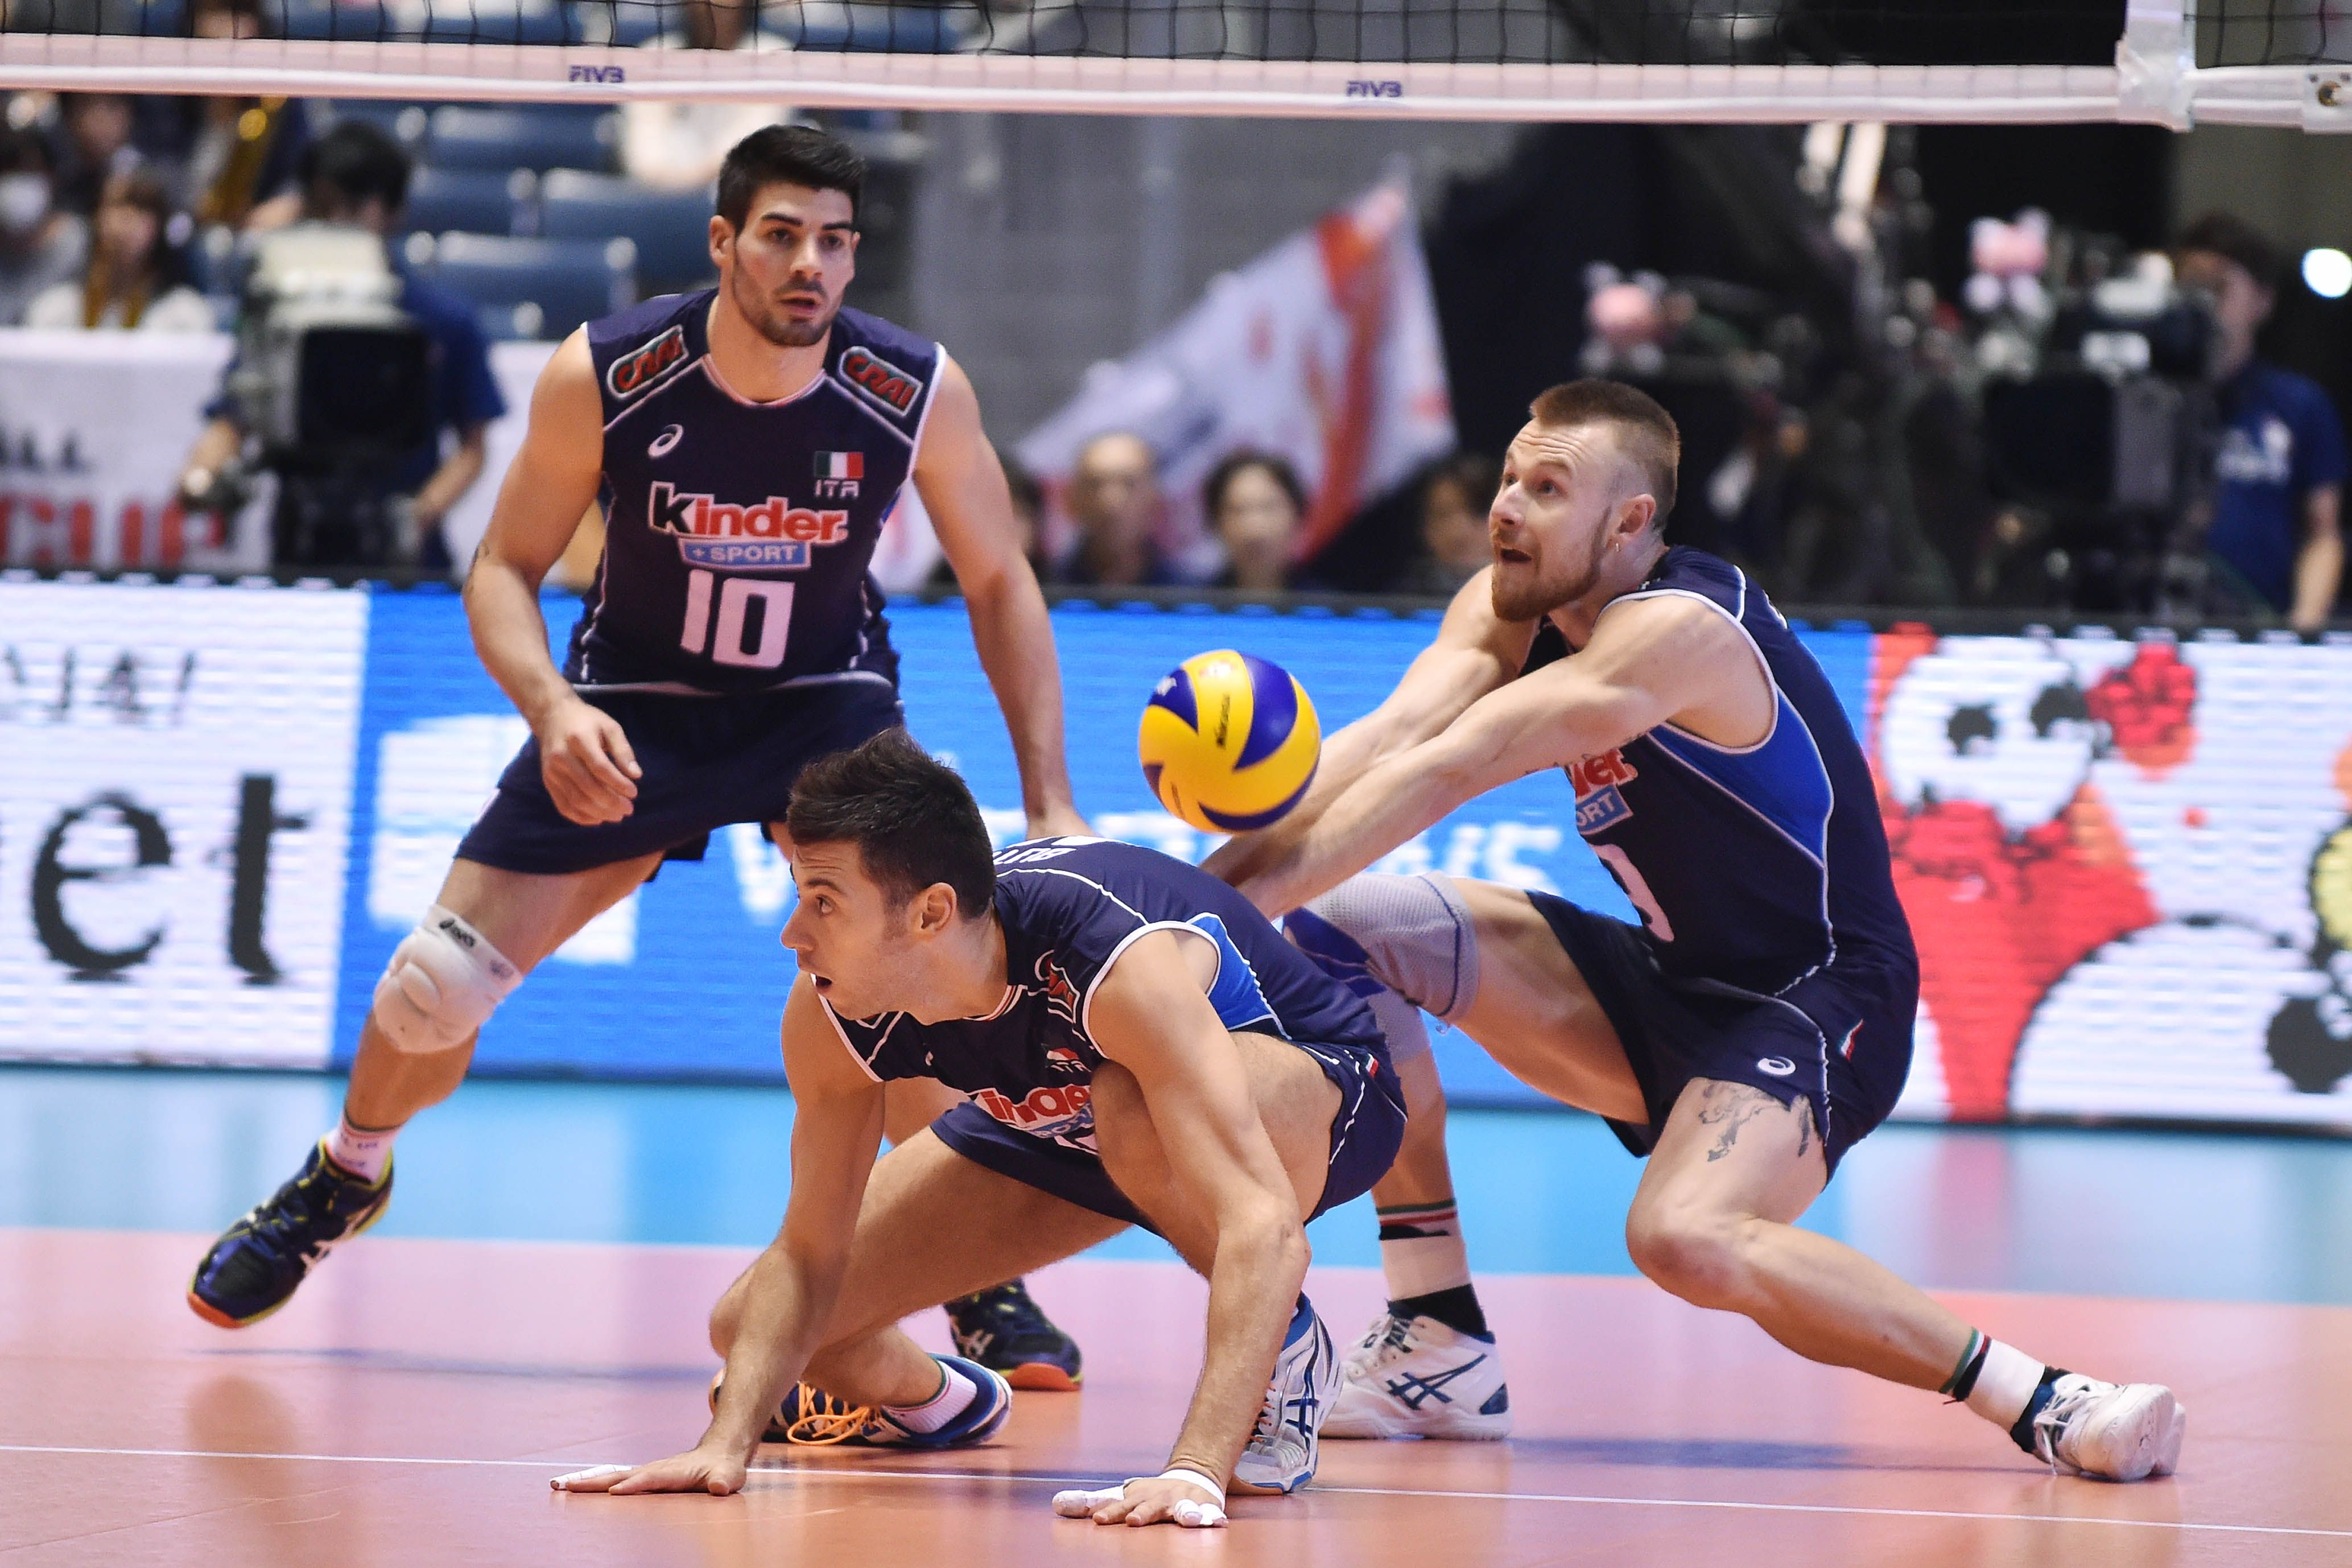 Forza Ivan In 2020 With Images Volleyball Volleyball Wallpaper Volley